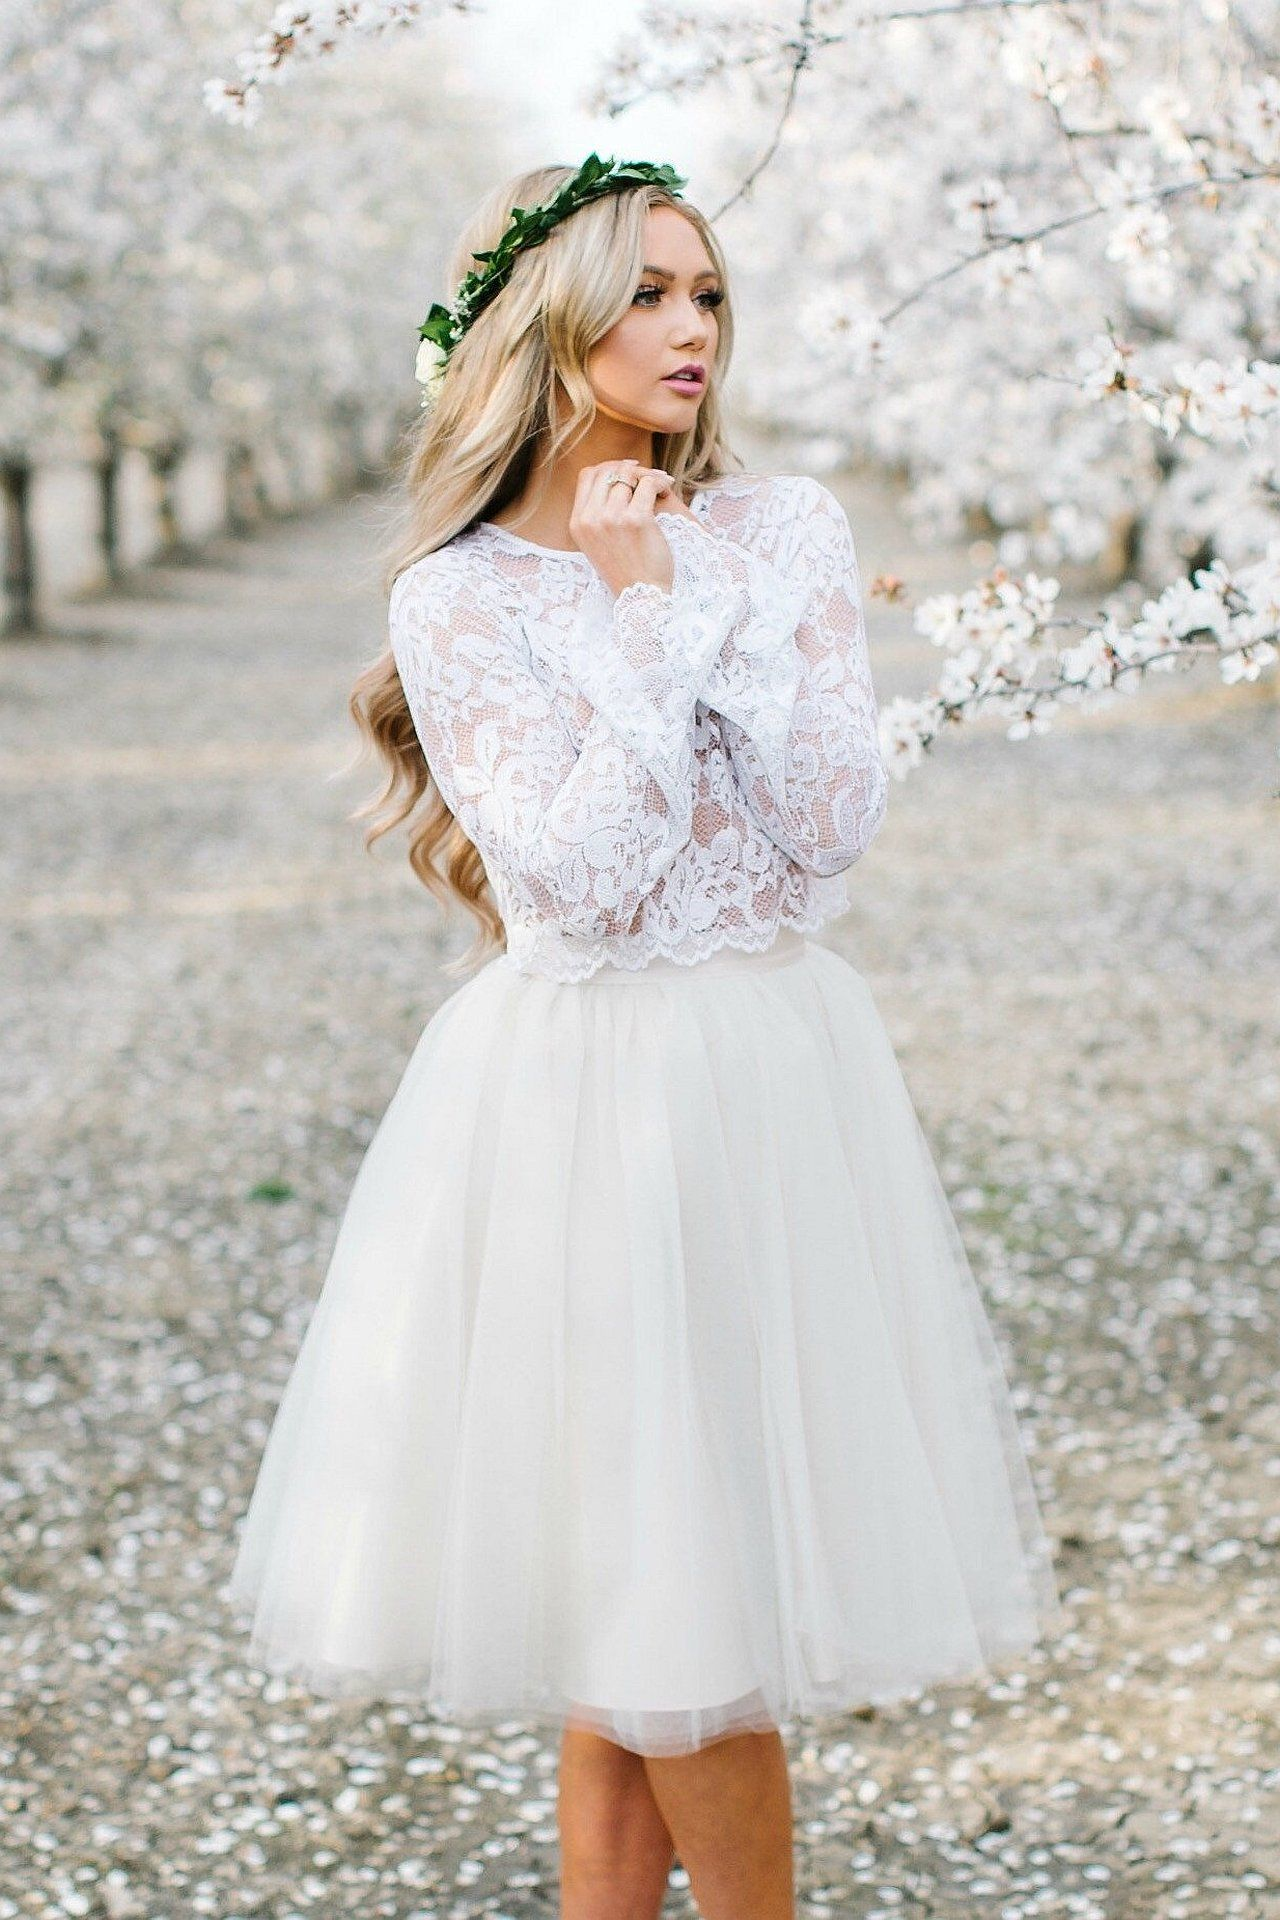 Femmefashionpassion The Emma By Bliss Tulle Md Stephanie Danielle Ph Anna Perevertaylo Fa Tulle Homecoming Dress Tulle Skirts Outfit White Tulle Skirt Outfit [ 1920 x 1280 Pixel ]